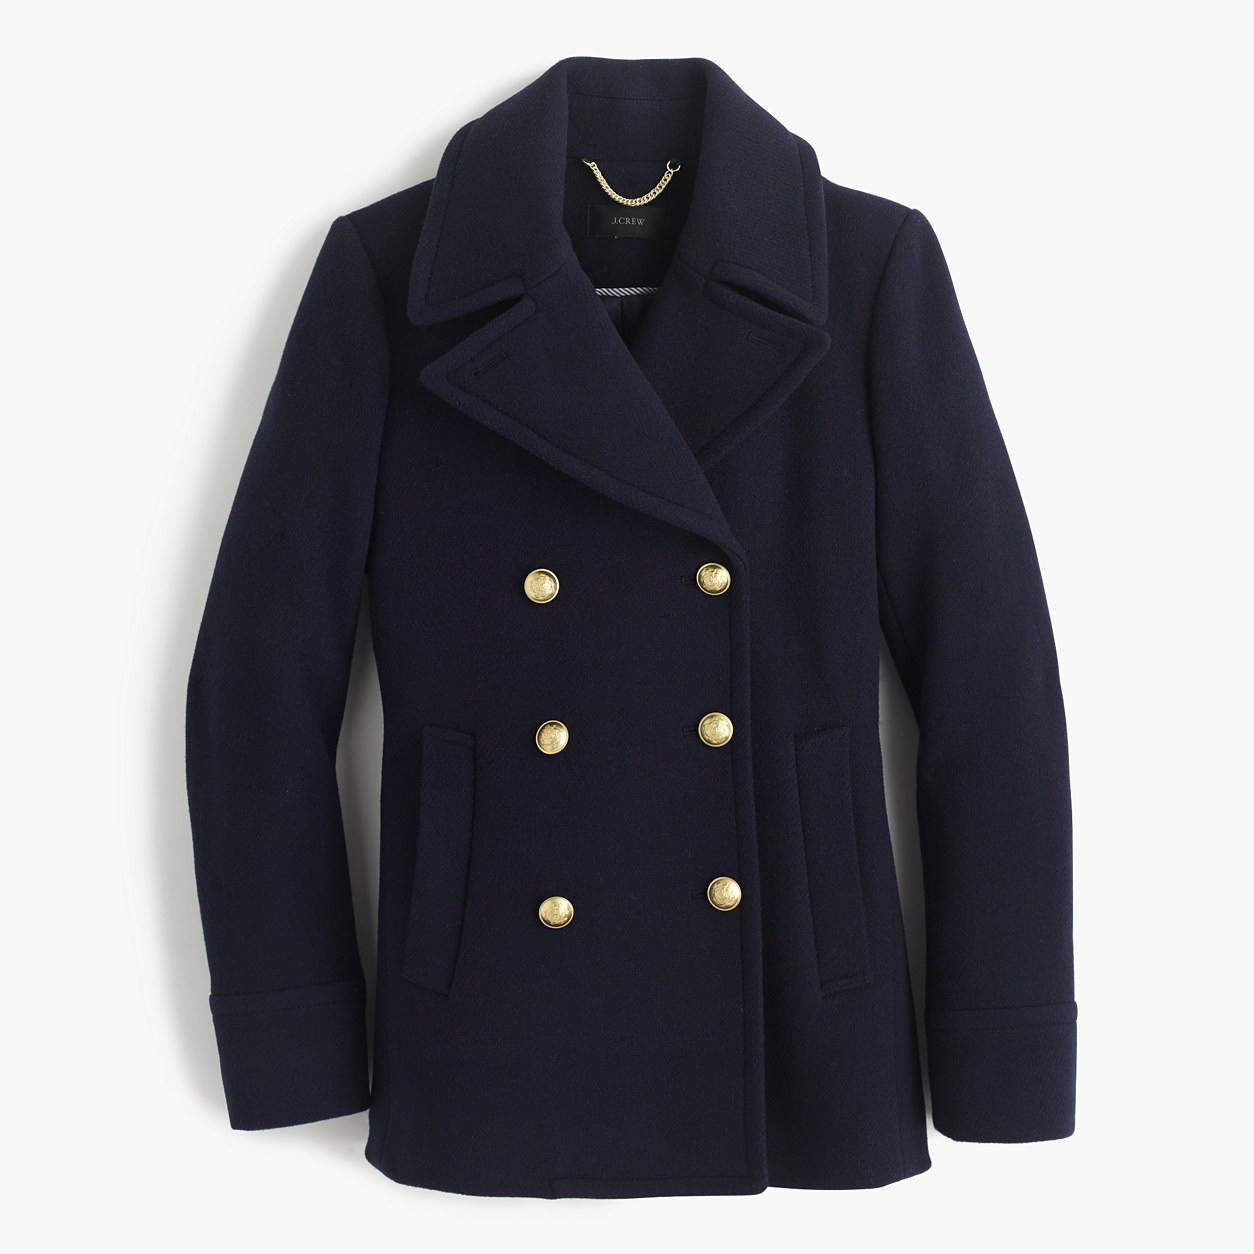 Jcrew Majesty Peacoat in Navy